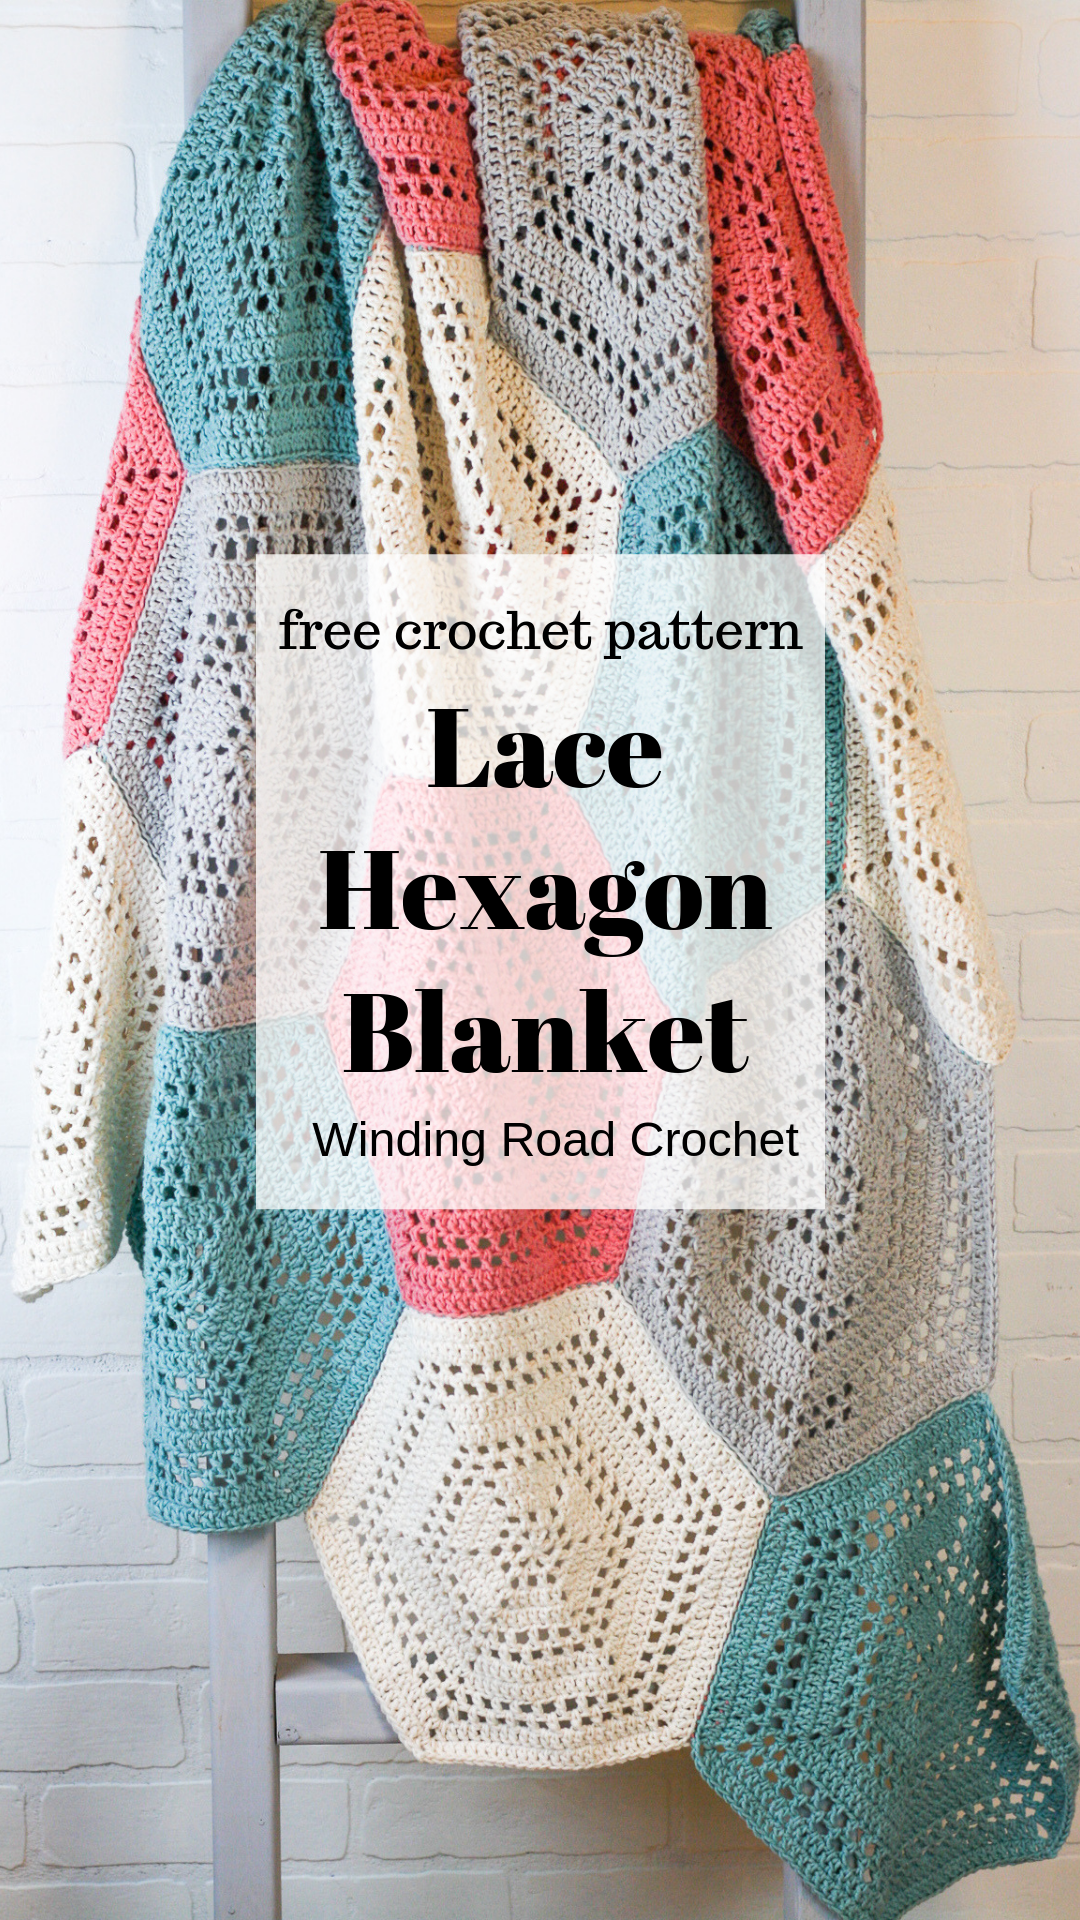 How to Crochet a Hexagon Blanket - Winding Road Crochet